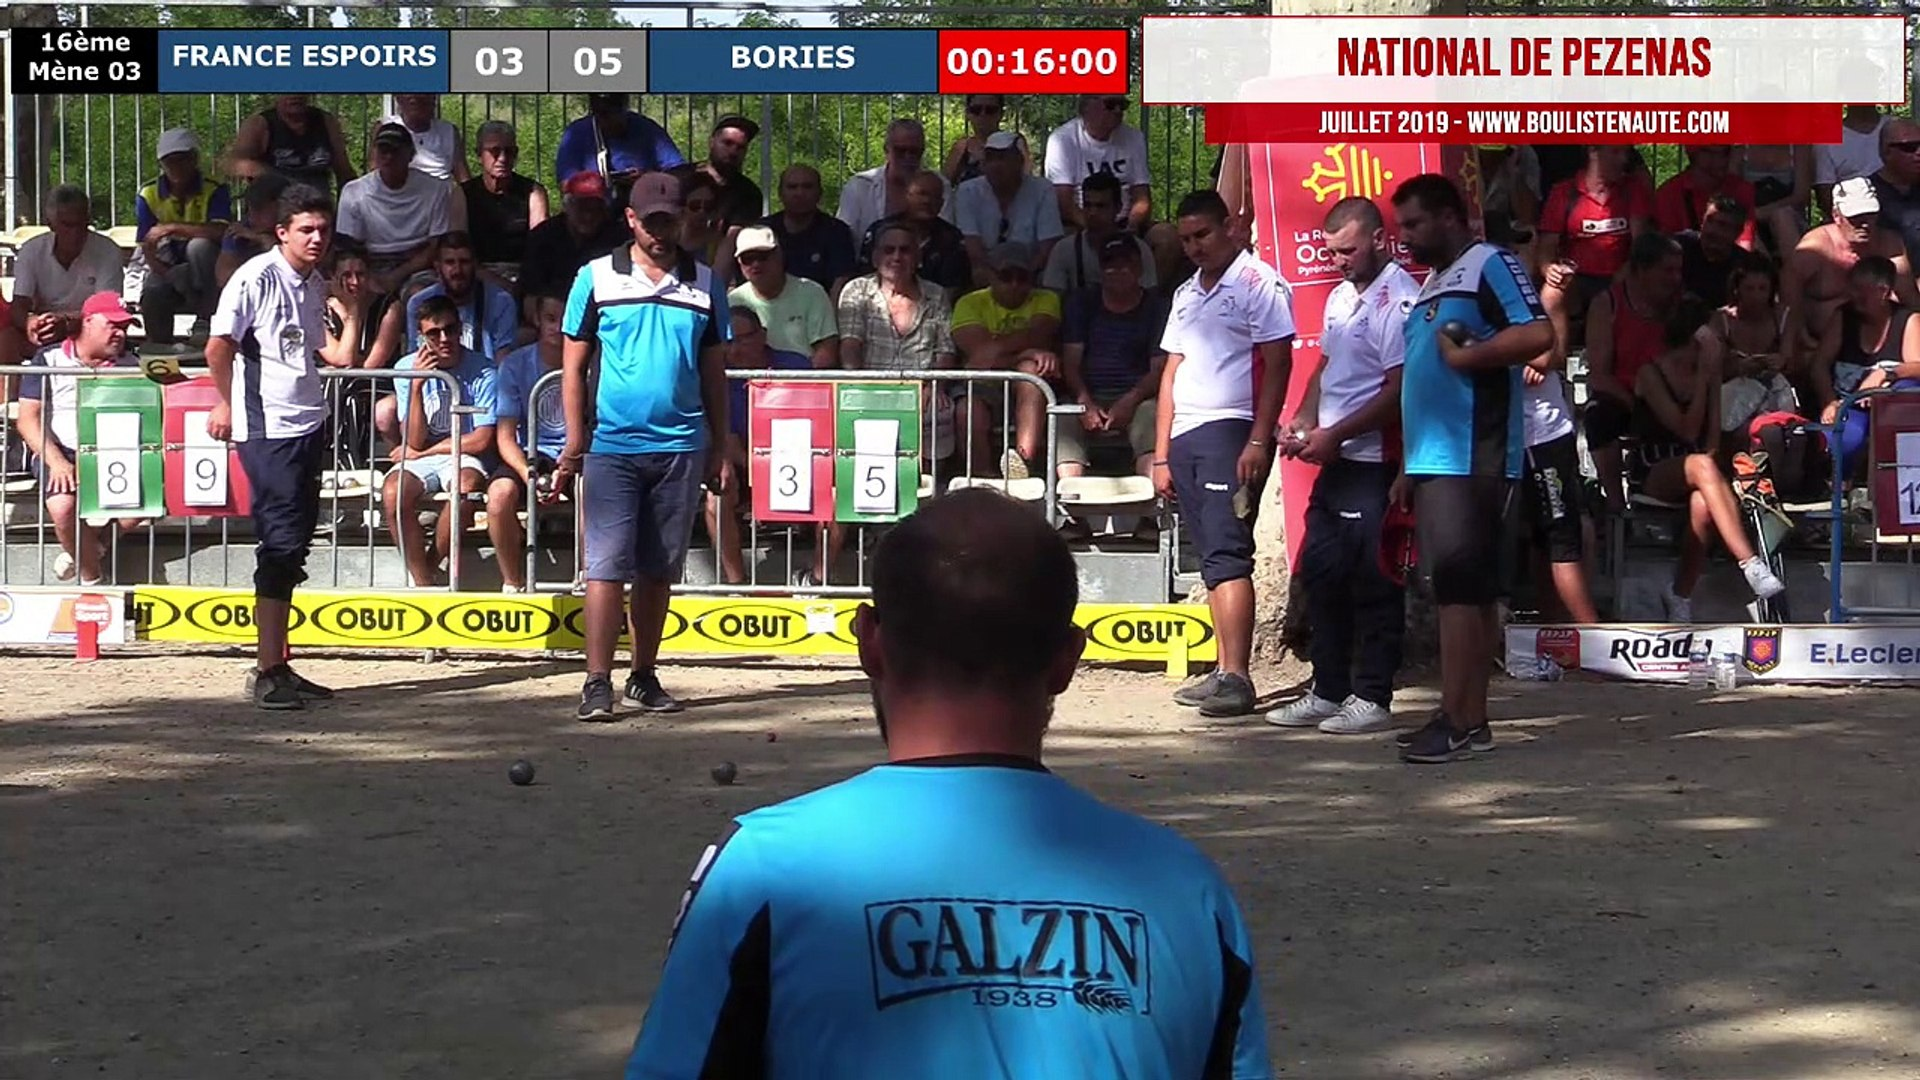 National de Pézenas 2019, le jubilé ! 16ème de finale France Espoirs VS Bories